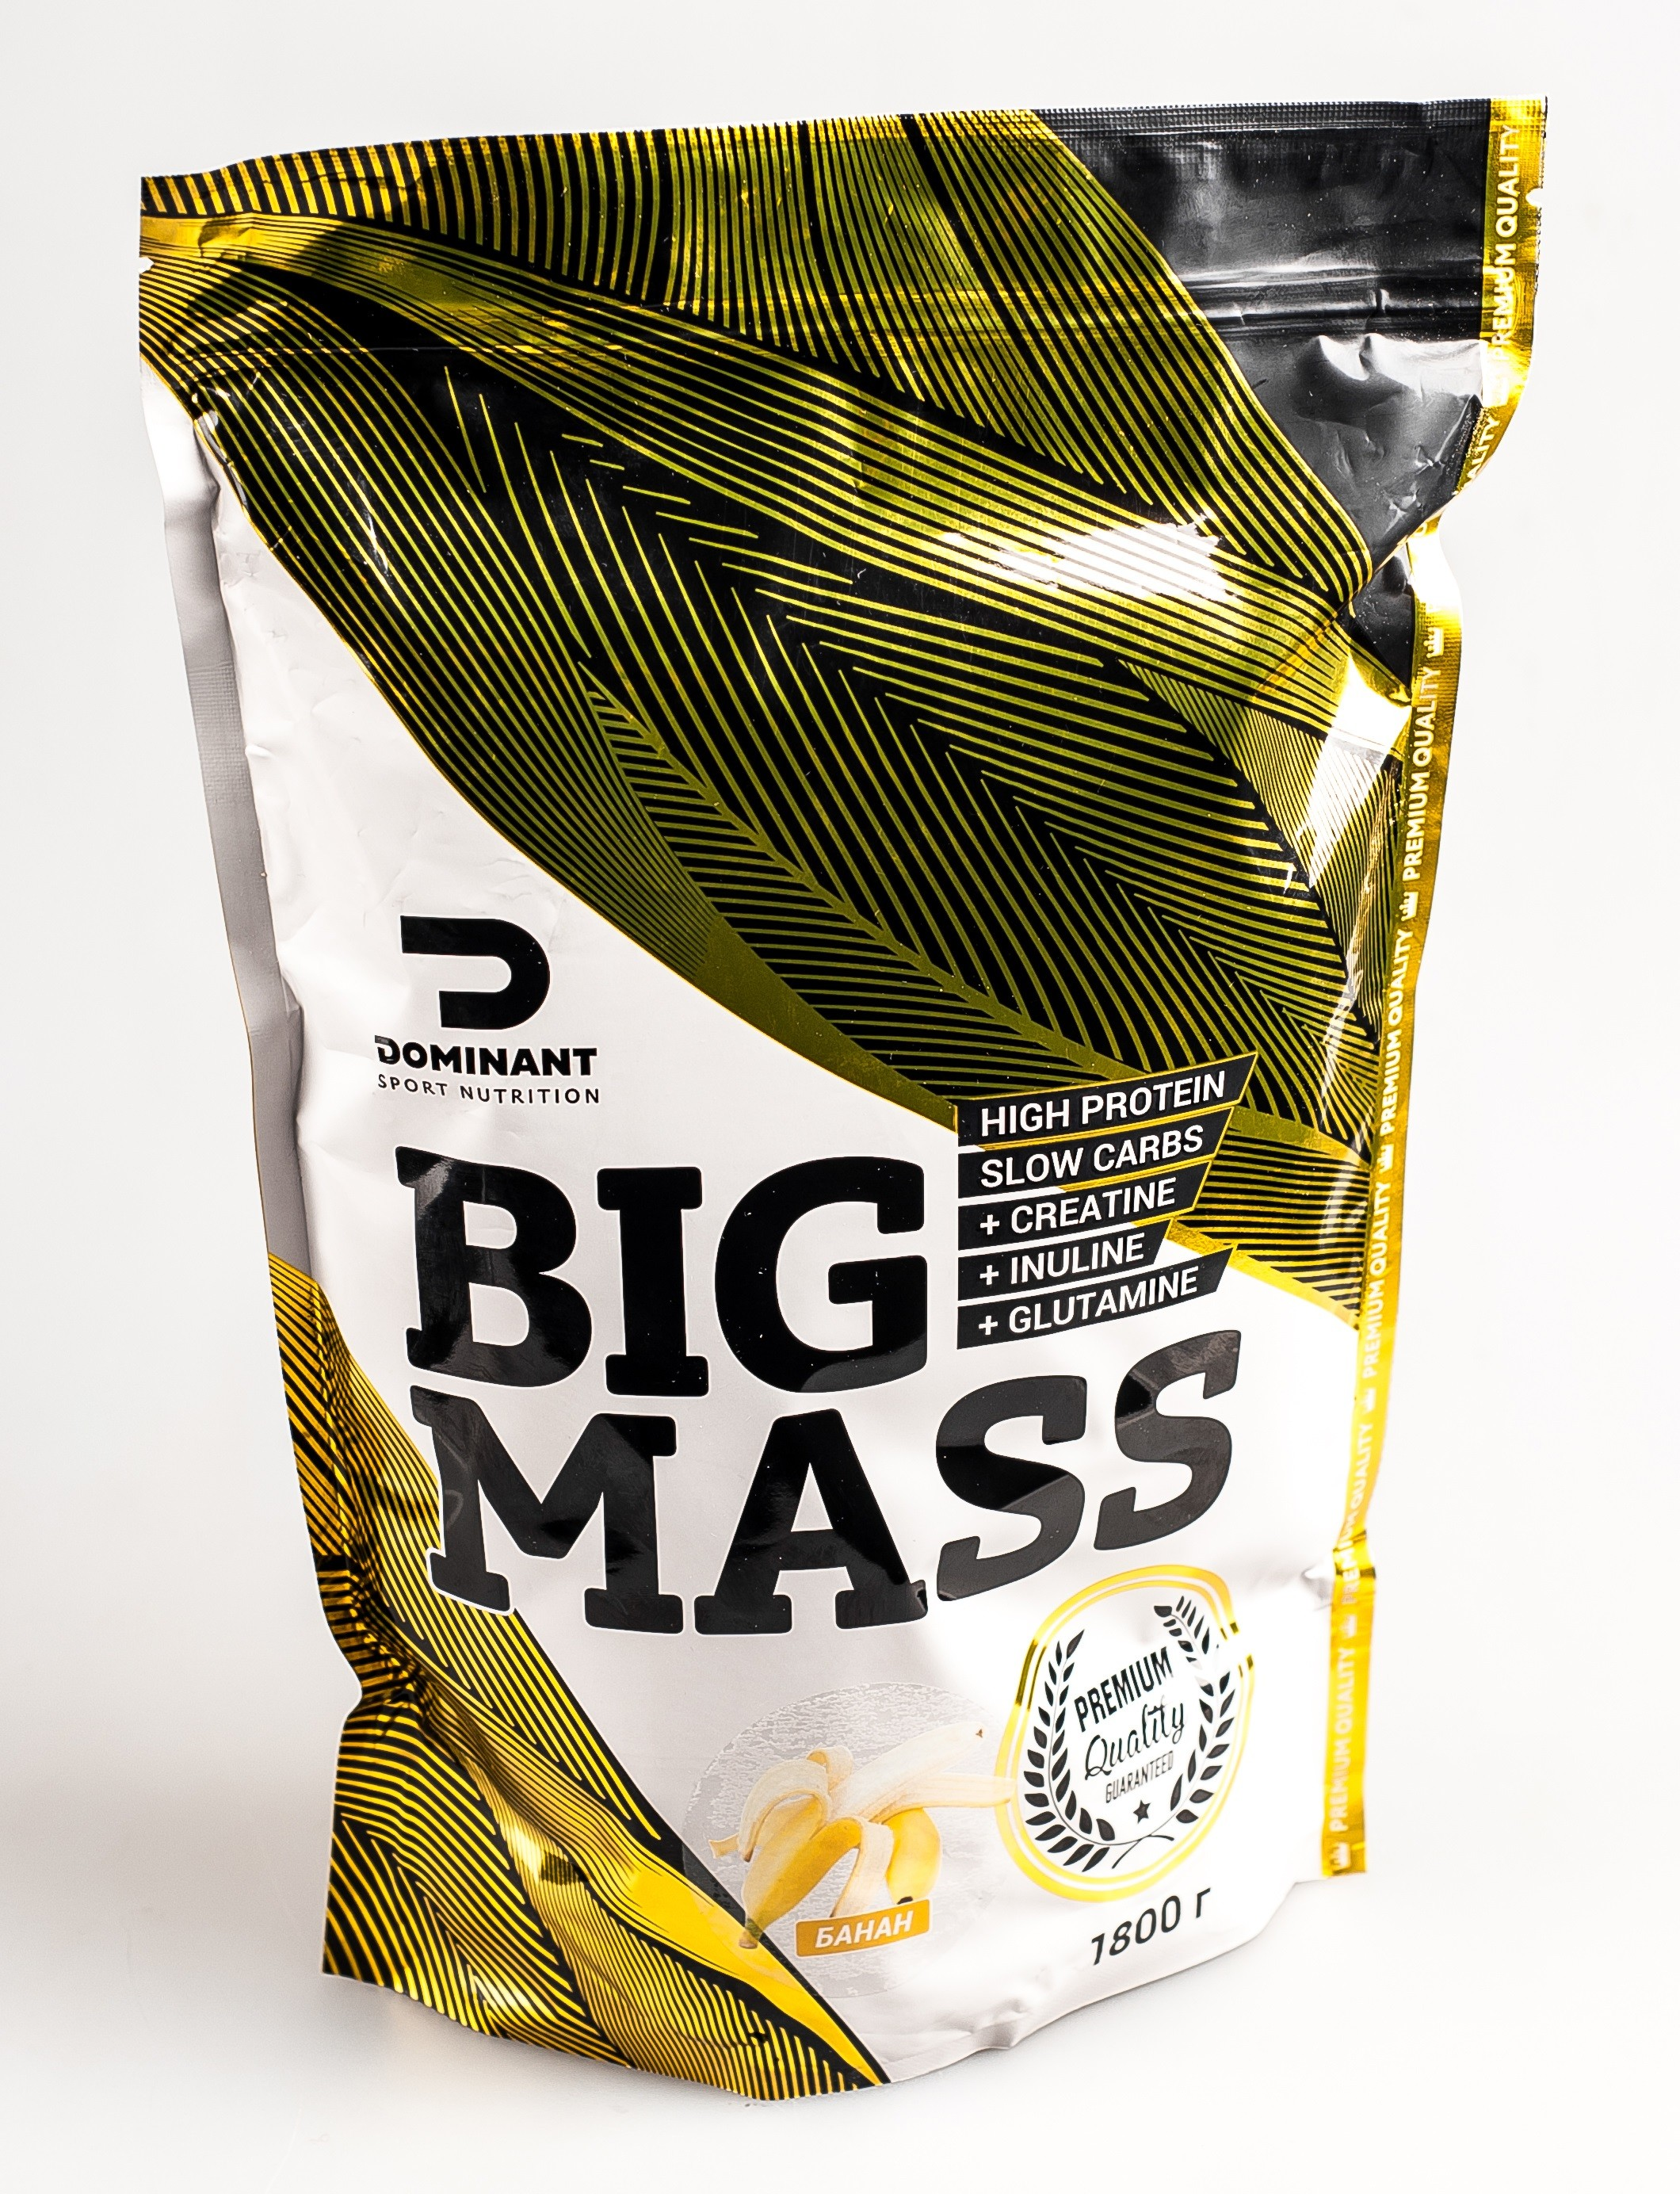 Big Mass (Dominant)